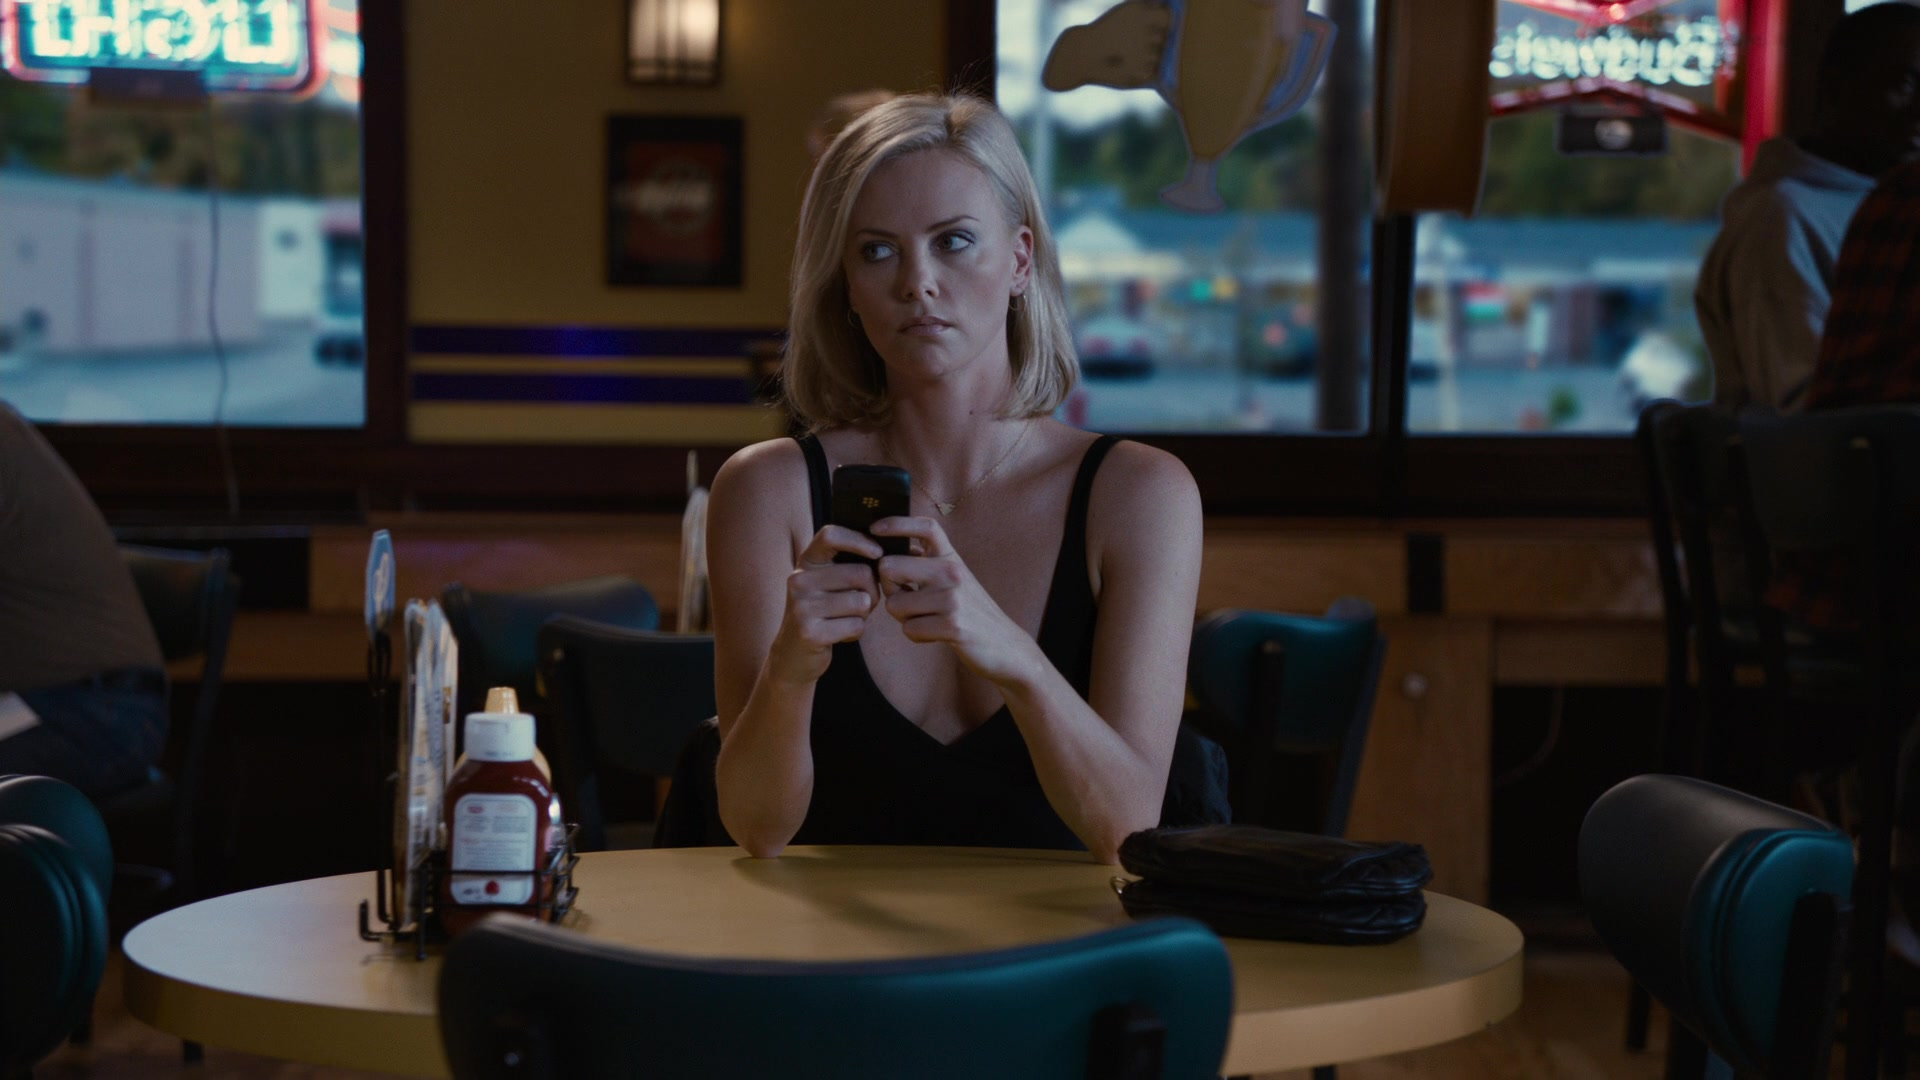 Blackberry Cell Phone Used by Charlize Theron in Young Adult (2011)